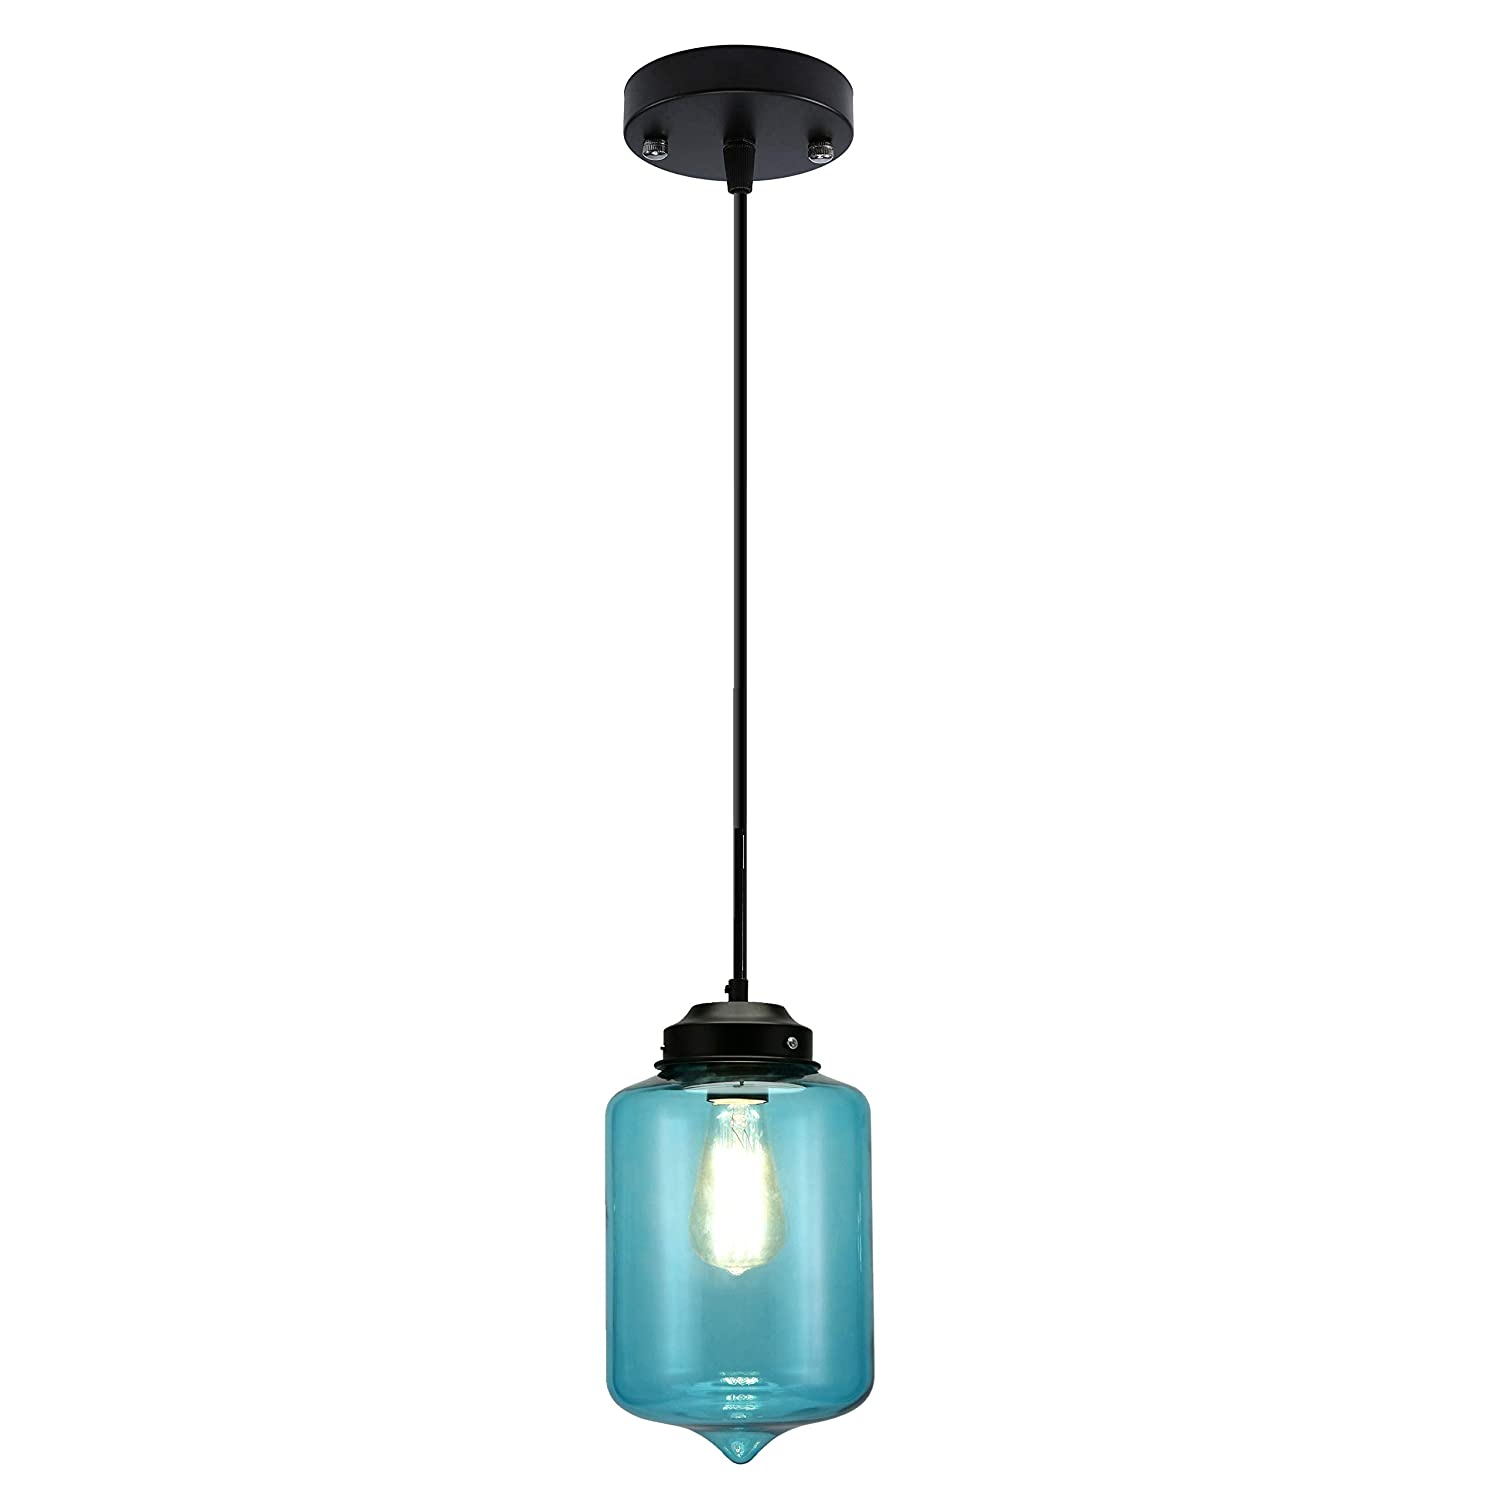 Lampmall Pendant Lighting Handblown Glass Drop Ceiling Lights, Organic Contemporary Style Hanging Light, Bulb not Included (Blue)